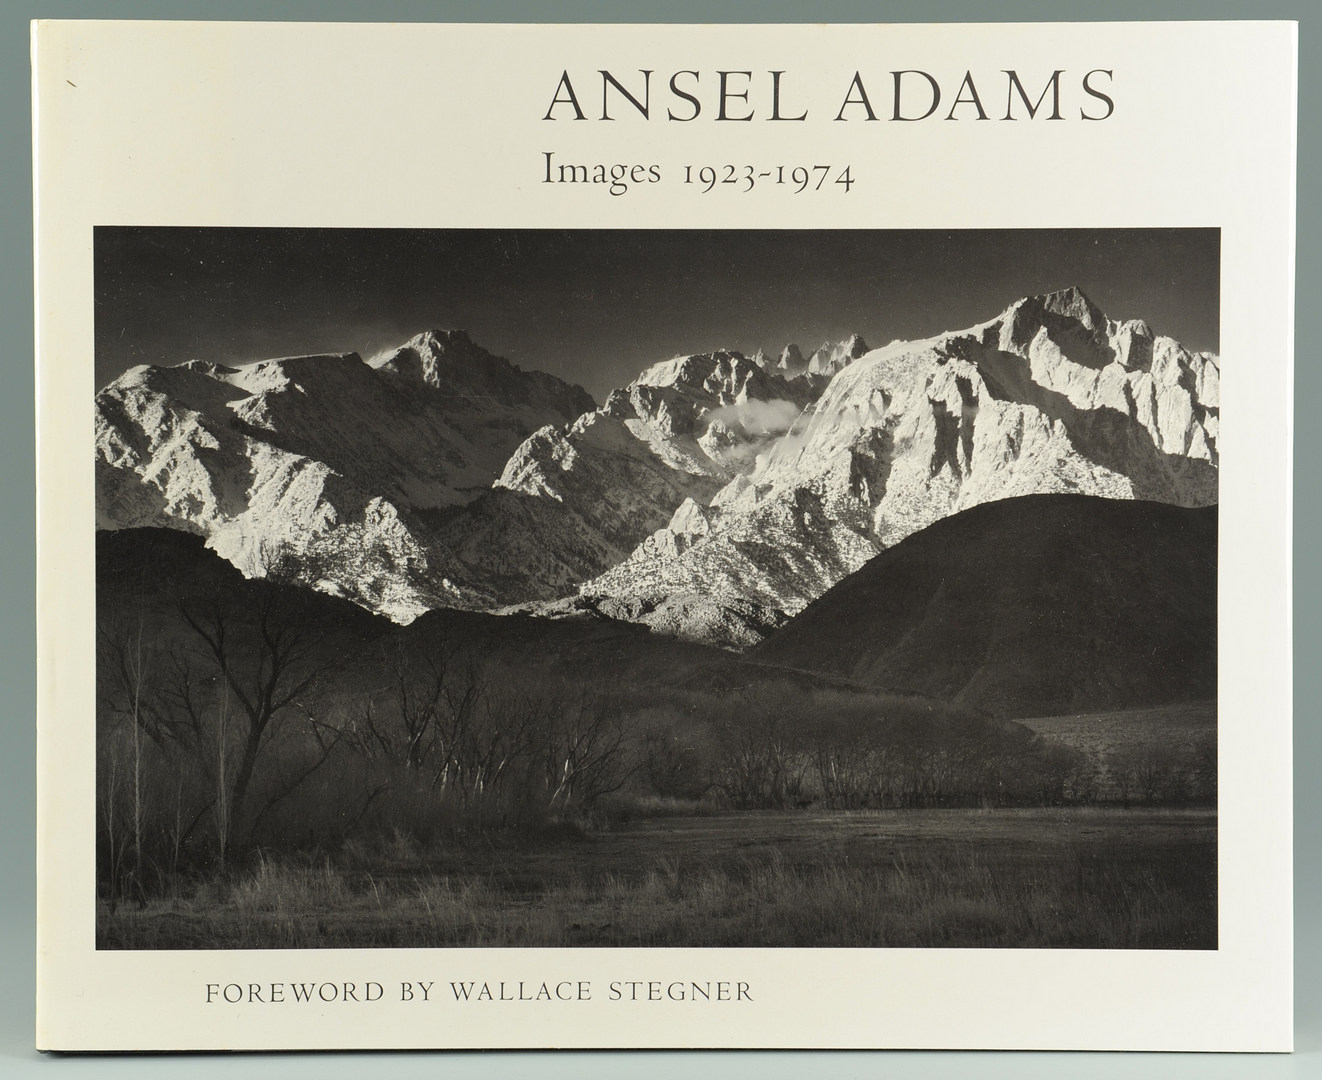 Lot 157: Ansel Adams, Images 1923-1974, 1st edition book